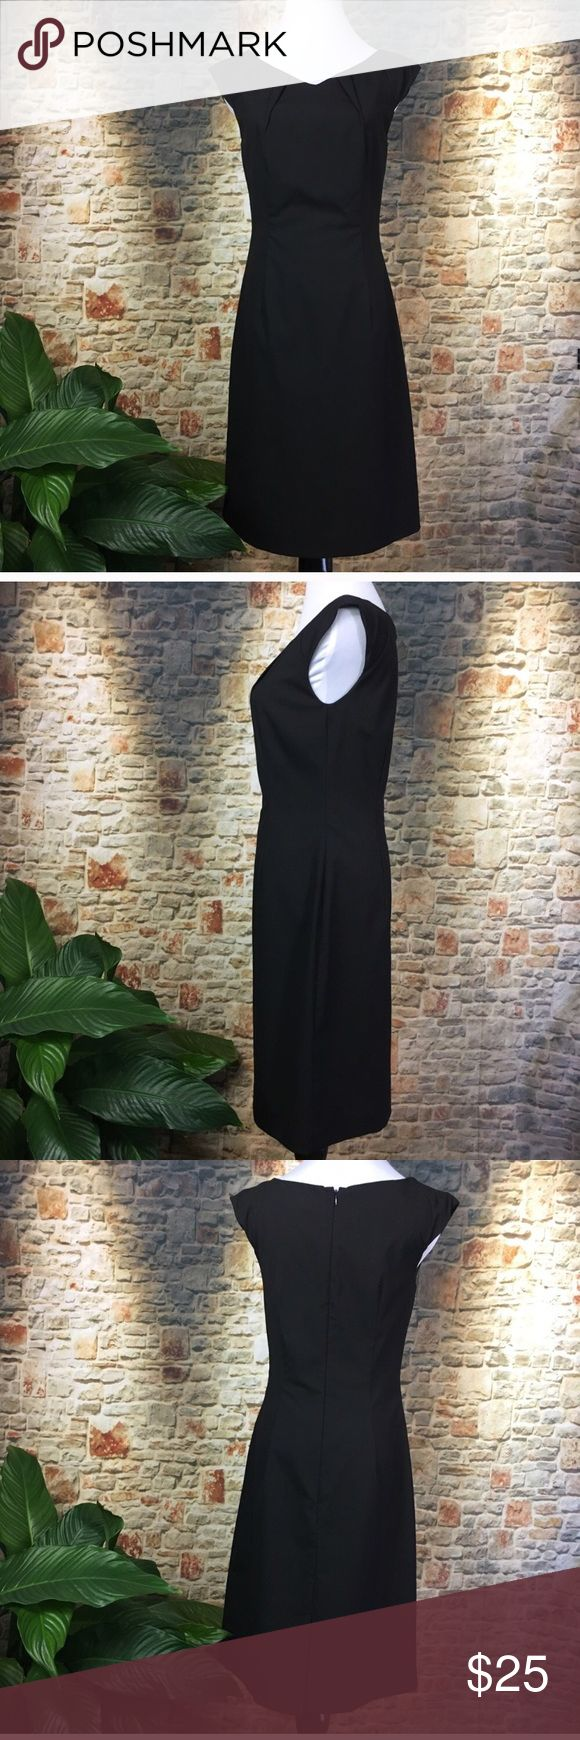 "Mossimo Lil Black Dress, size 4. Mossimo Lil Black Dress, size 4. Perfect for work and then moving into an evening out with the right accessories. Measurements are bust laid flat 17.5"", waist is 15.5"", shoulder to hem is 36.5"". Mossimo Dresses Midi"